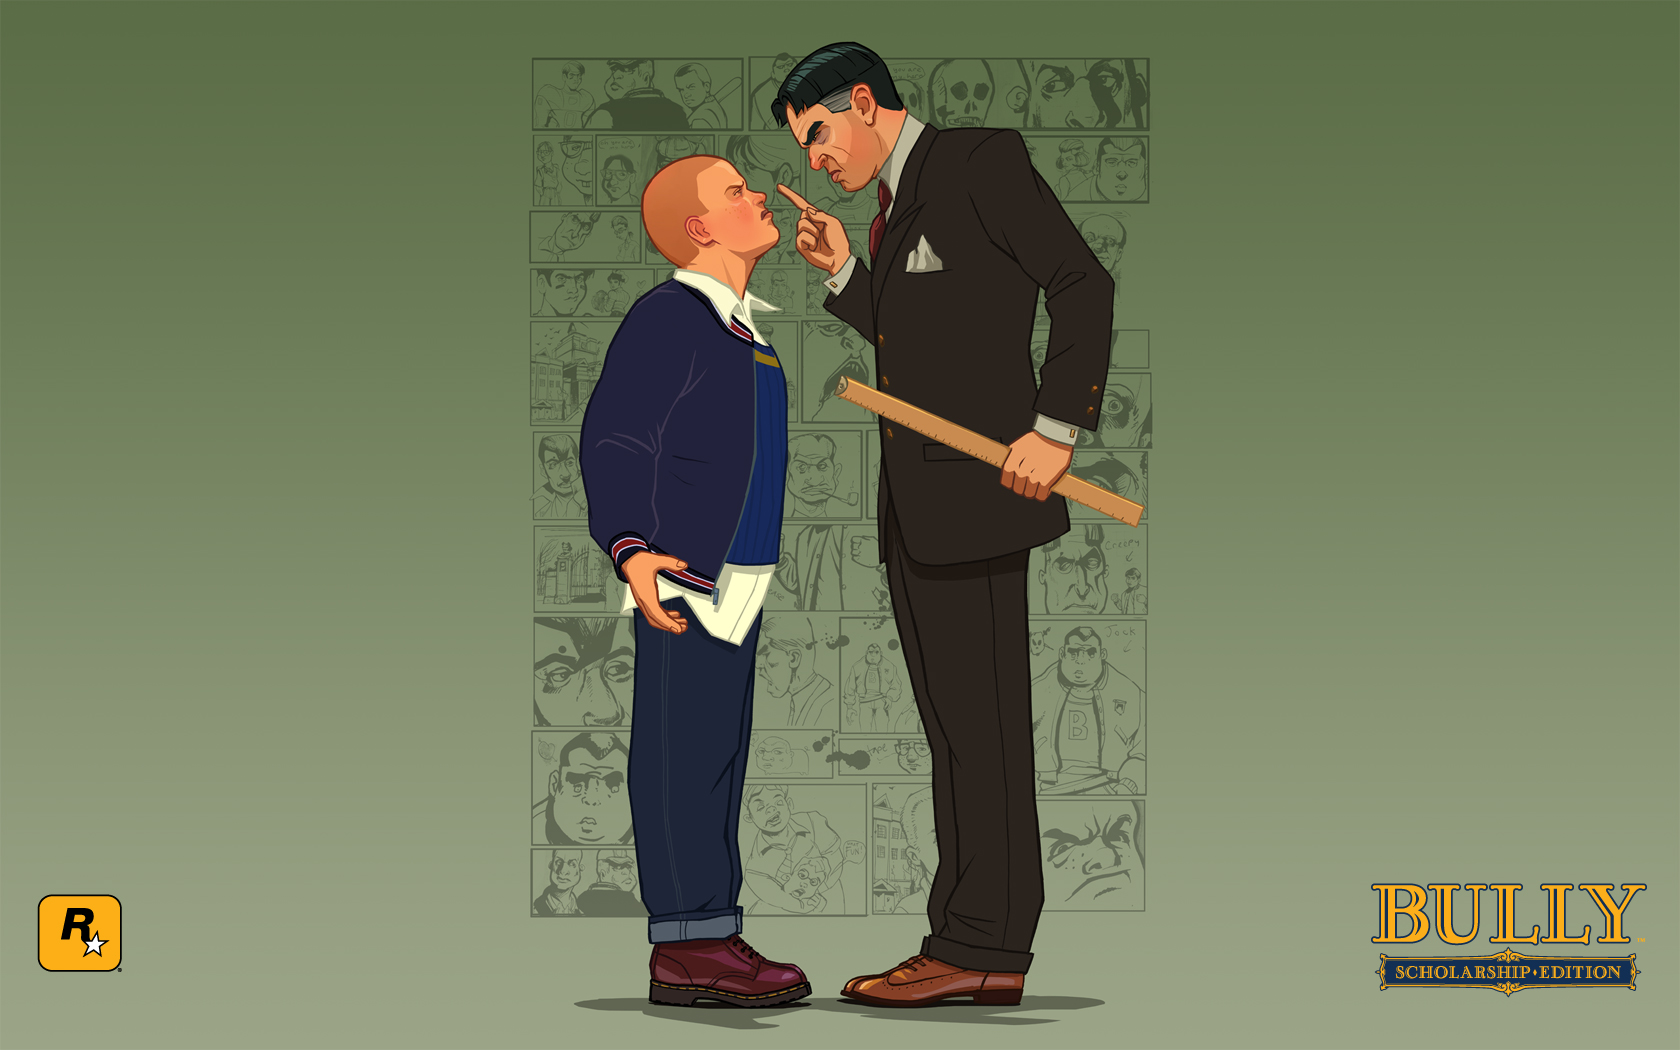 Bully Scholarship Edition 2016 promotional art   MobyGames 1680x1050